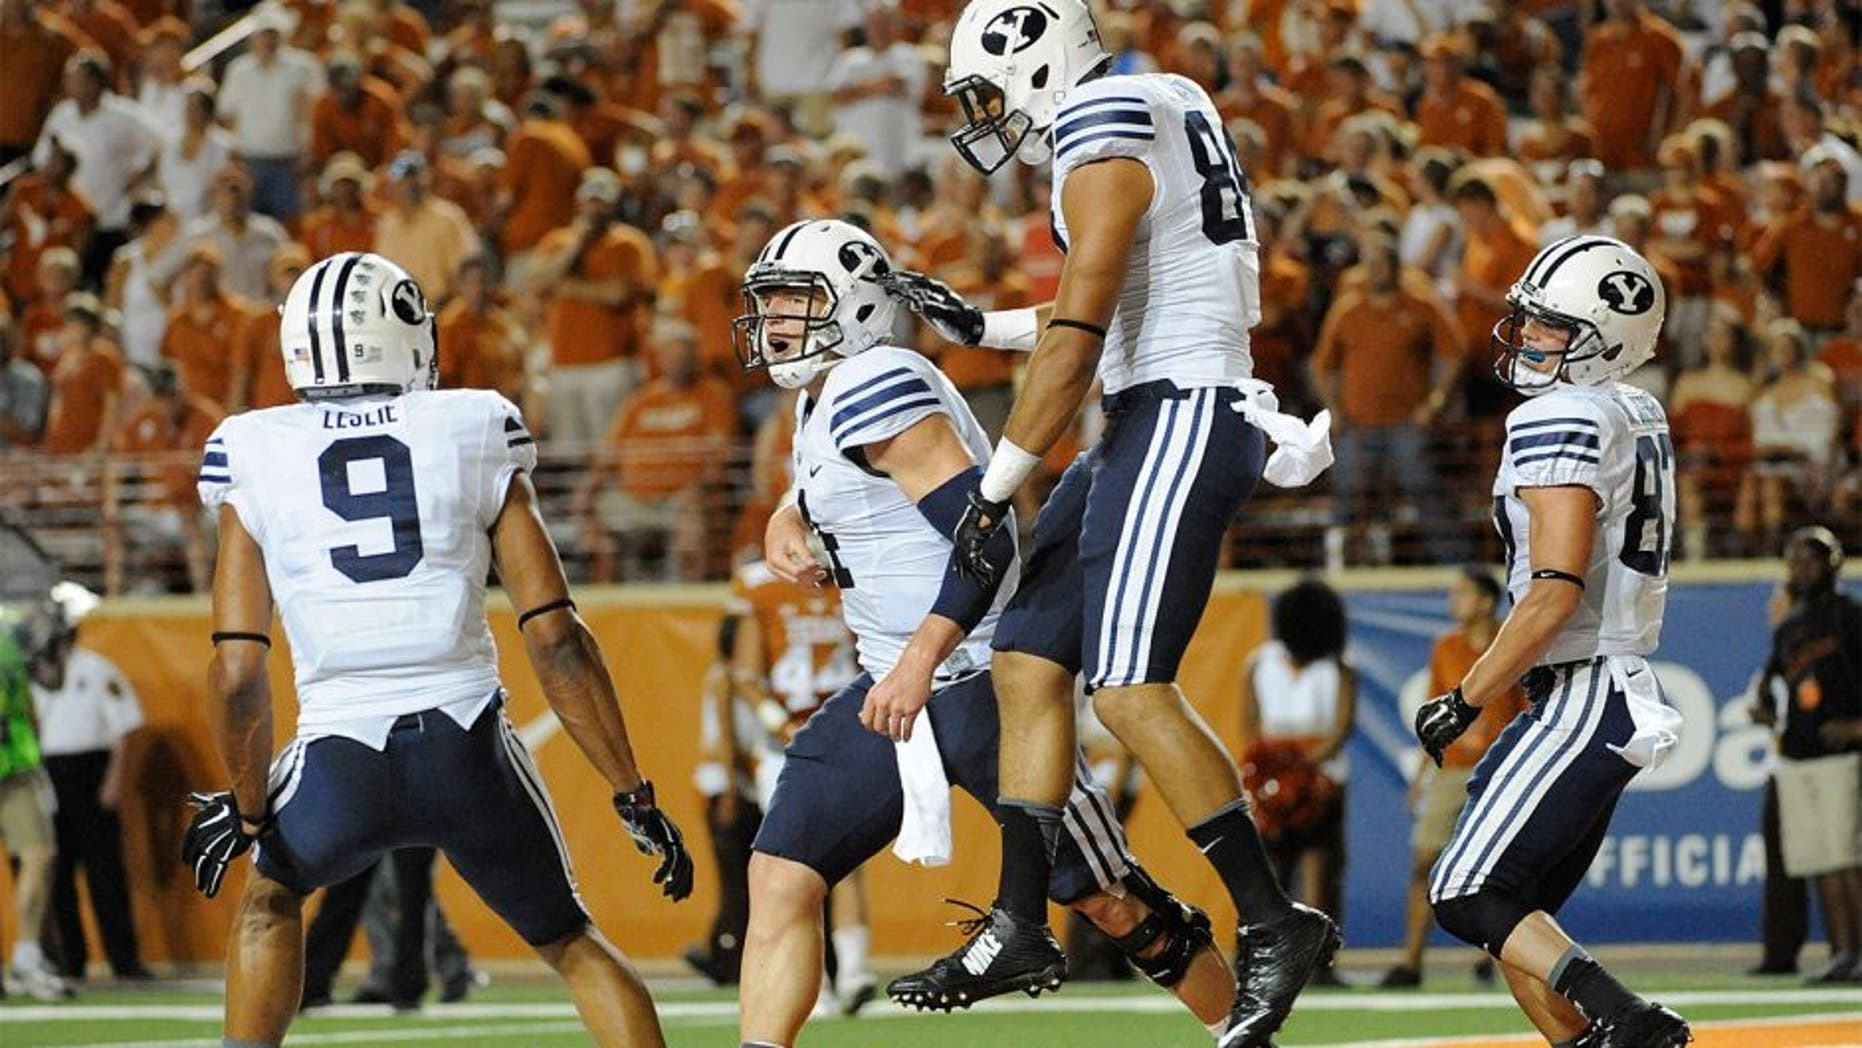 Sep 6, 2014; Austin, TX, USA; Brigham Young Cougars quarterback Taysom Hill (4) and tight end Devin Mahina (84) and wide receivers Jordan Leslie (9) and Mitchell Juergens (87) react after a touchdown against the Texas Longhorns during the second half at Darrell K Royal-Texas Memorial Stadium. BYU beat Texas 41-7. Mandatory Credit: Brendan Maloney-USA TODAY Sports